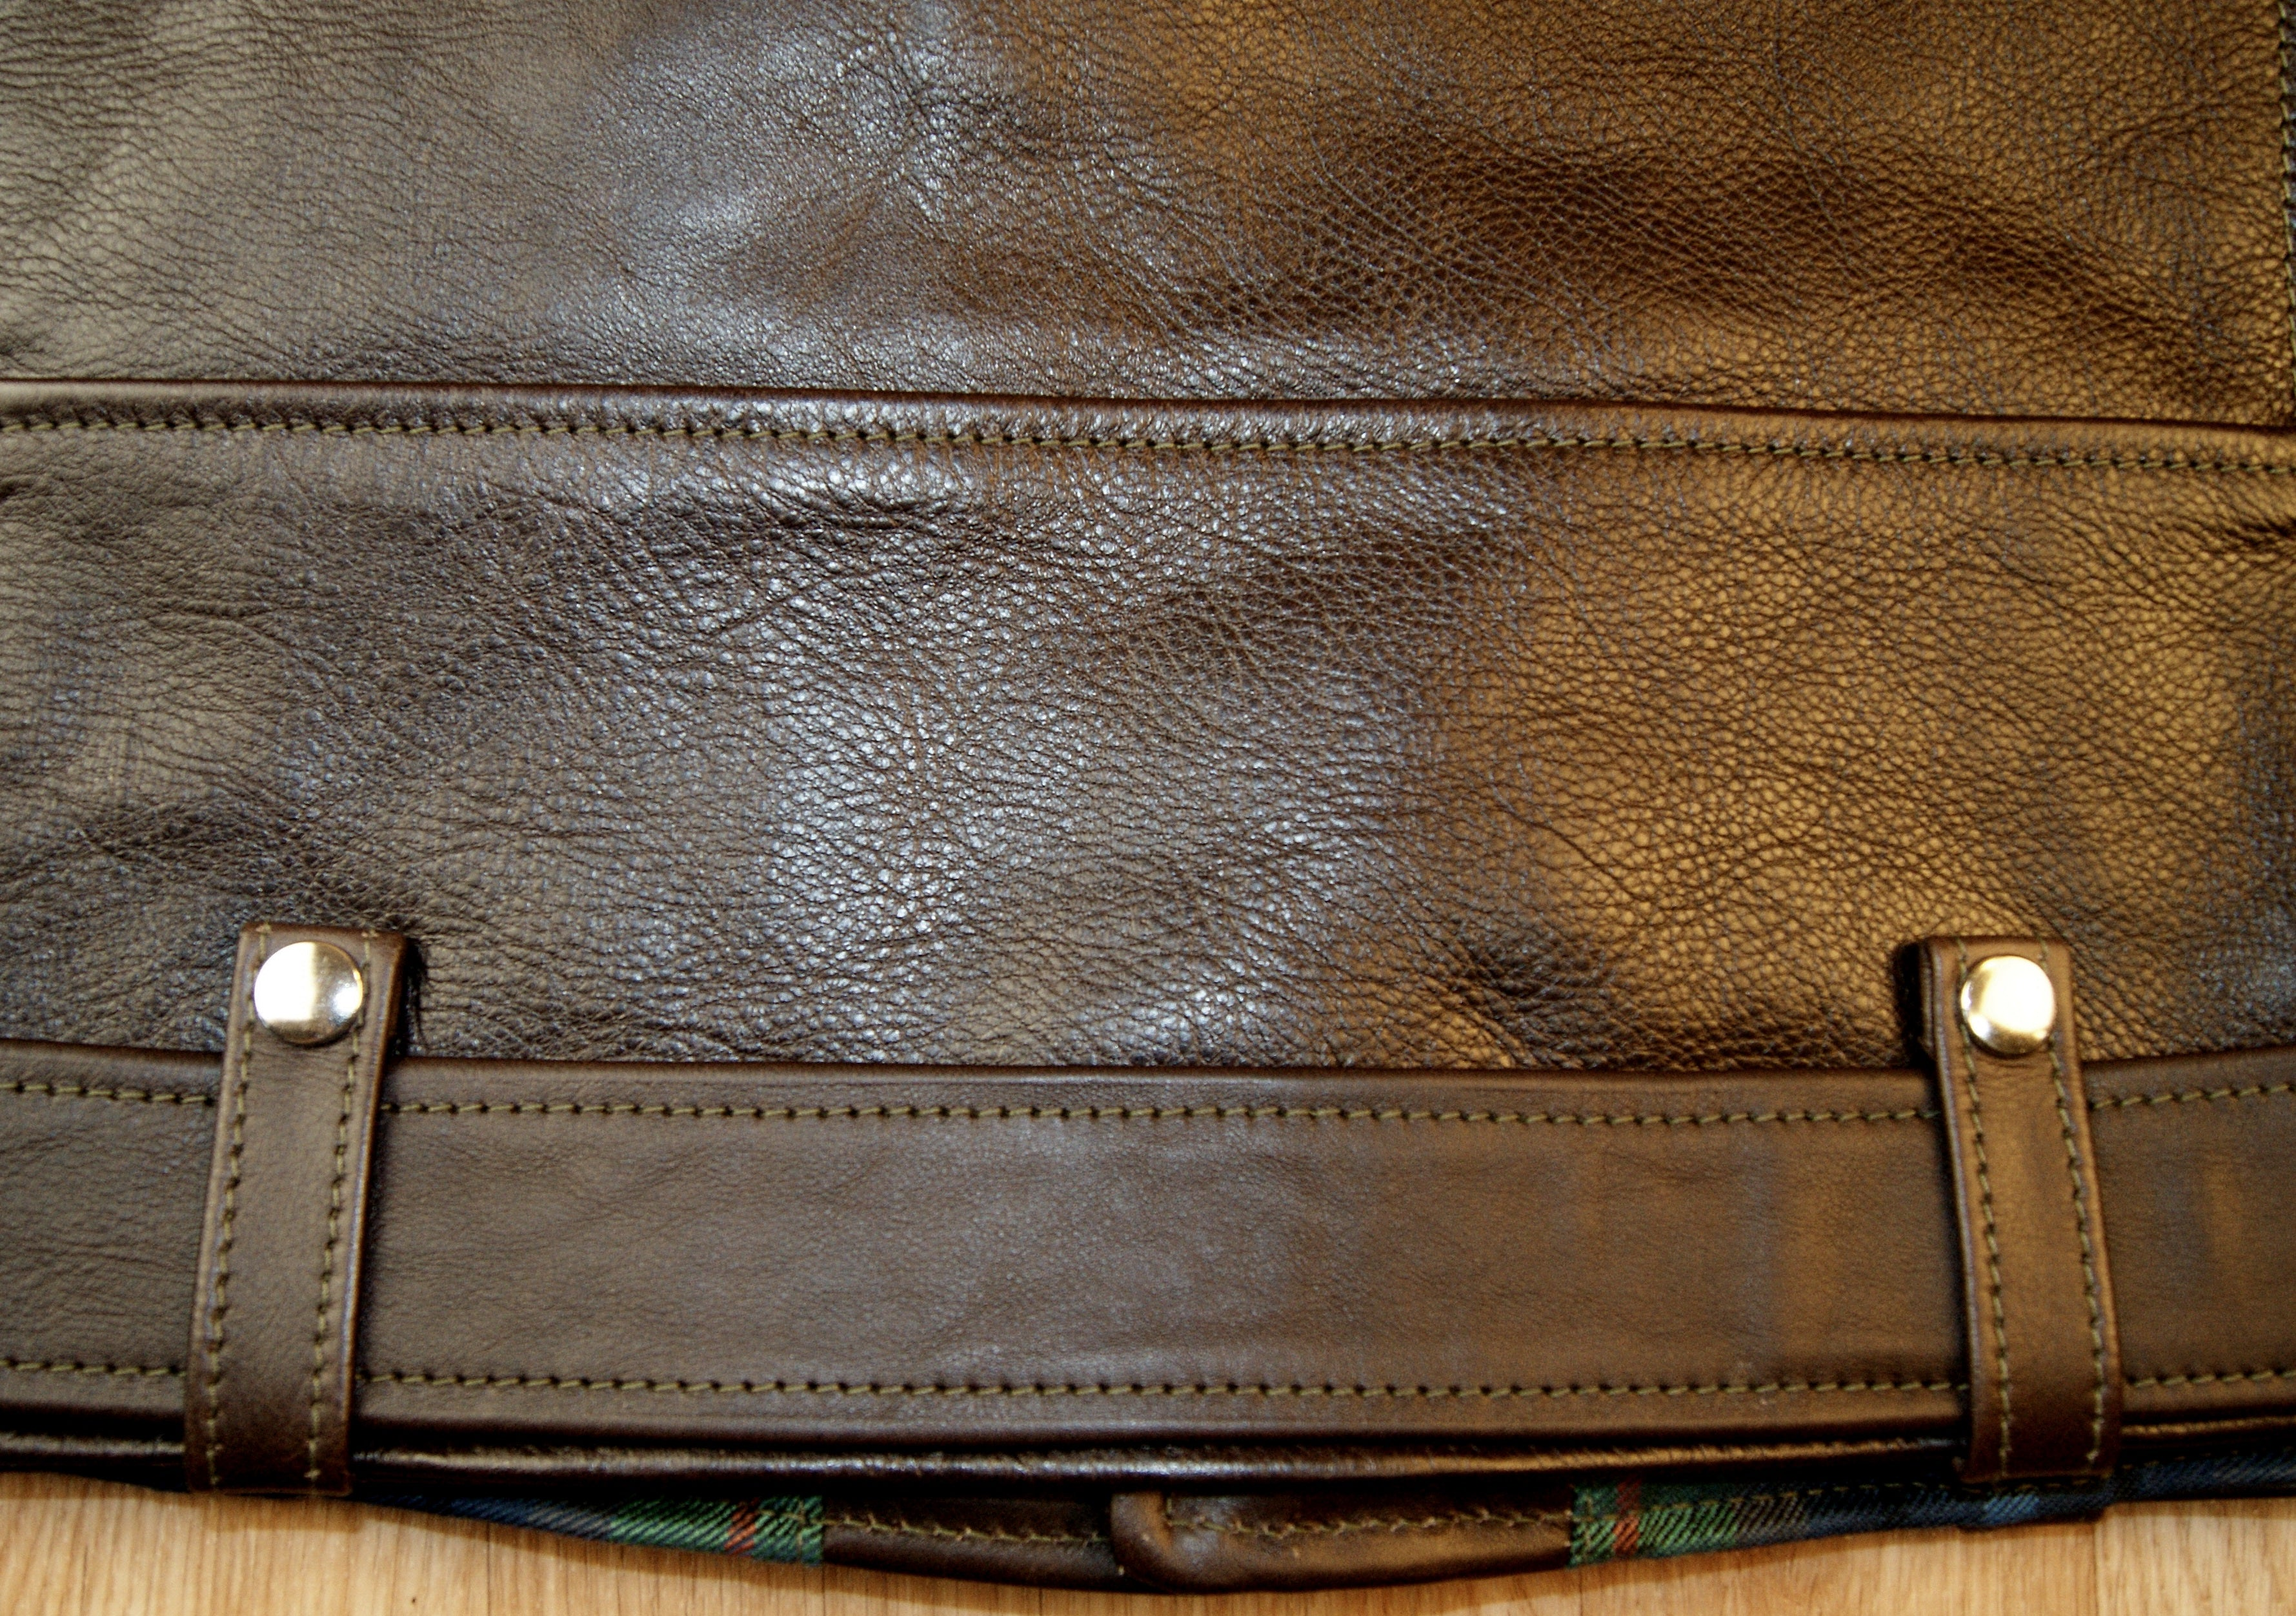 Aero D-Pocket Ridley, size 42, Dark Seal Vicenza Horsehide